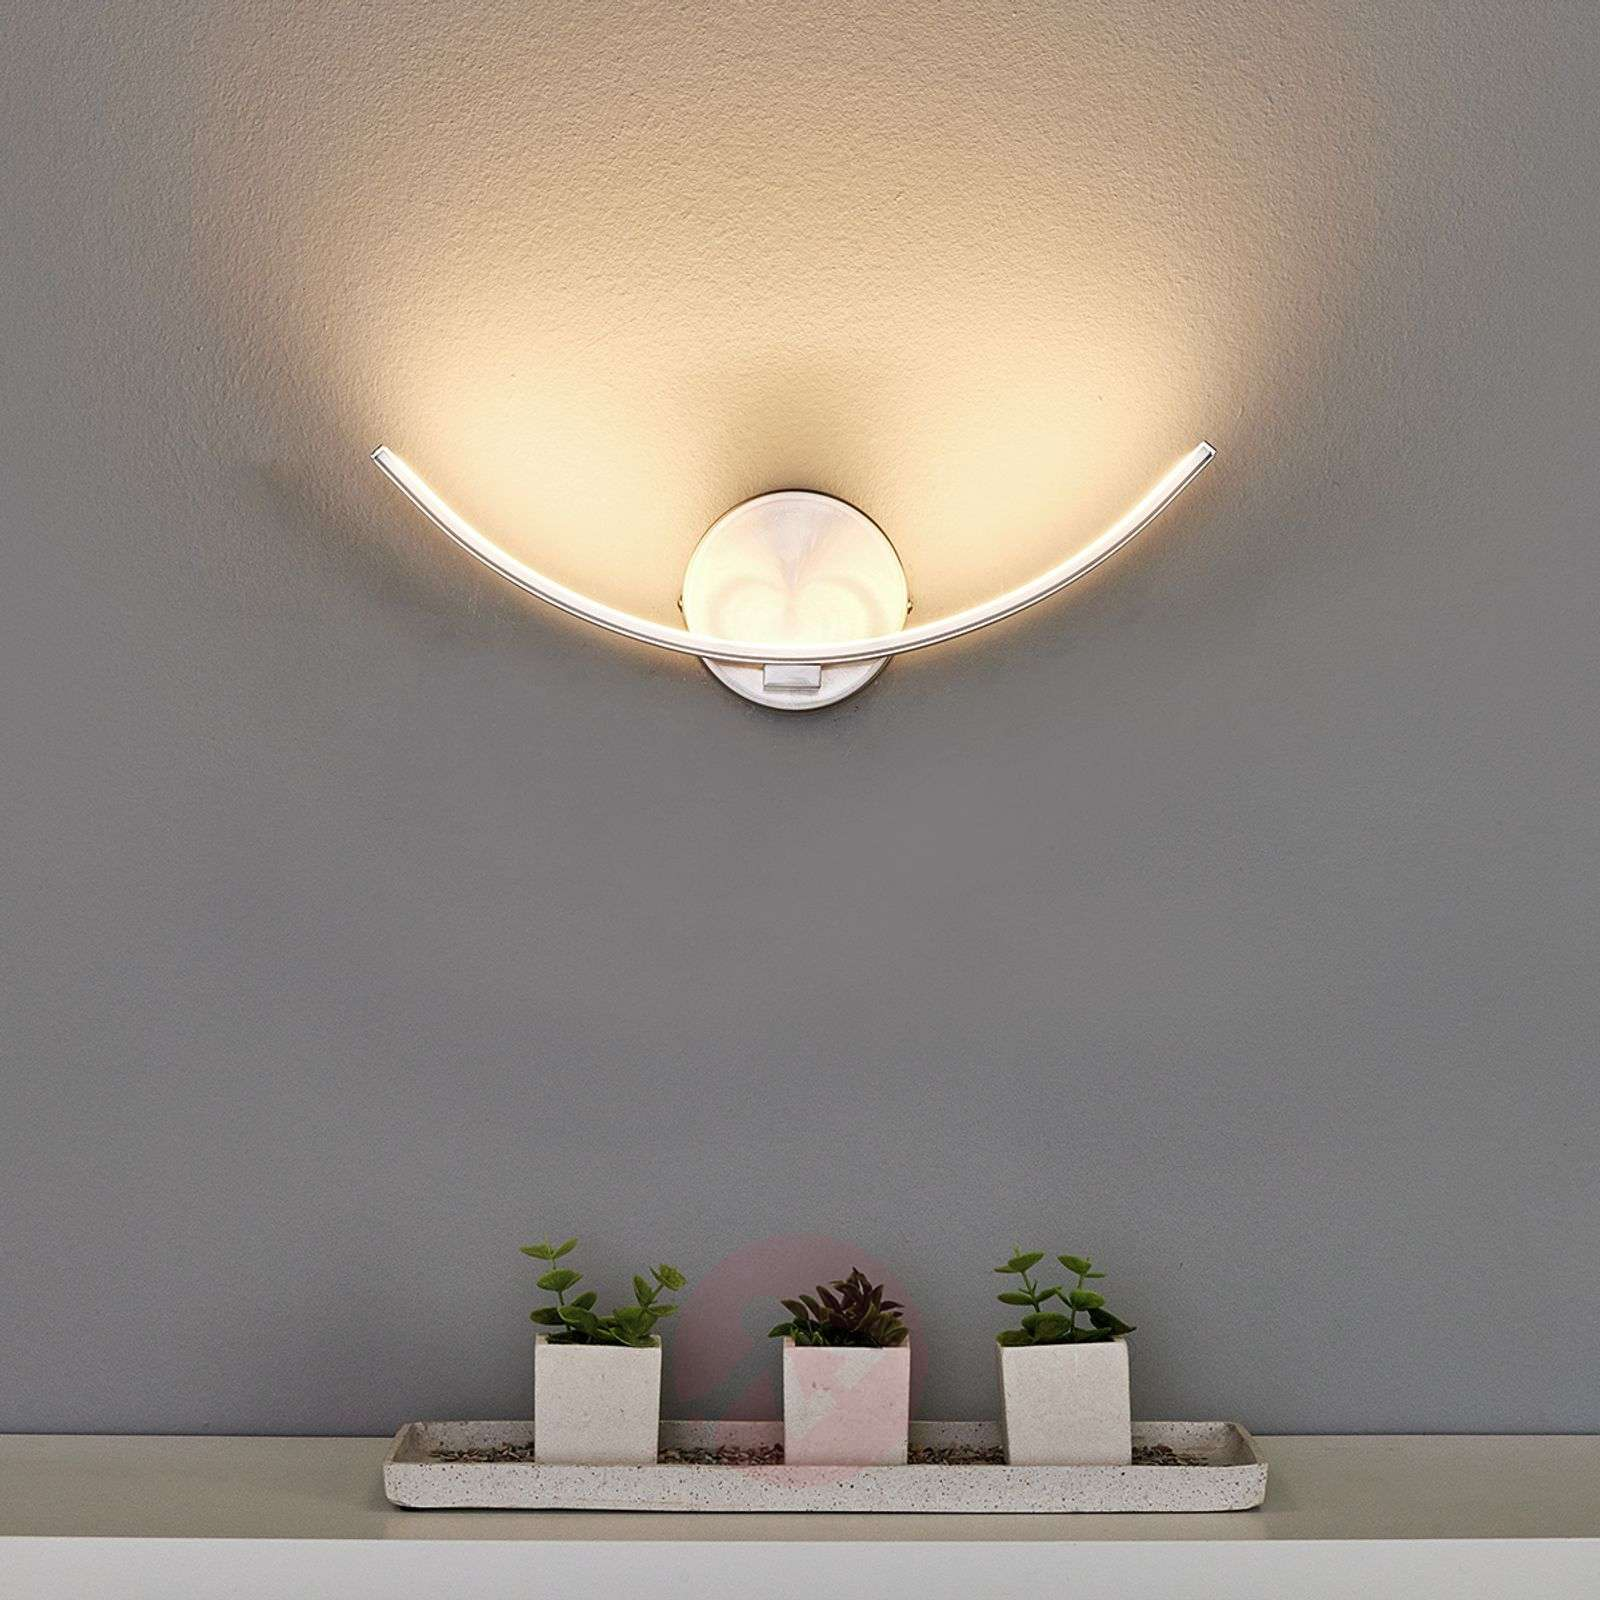 Curved LED wall lamp Iven-9985051-02